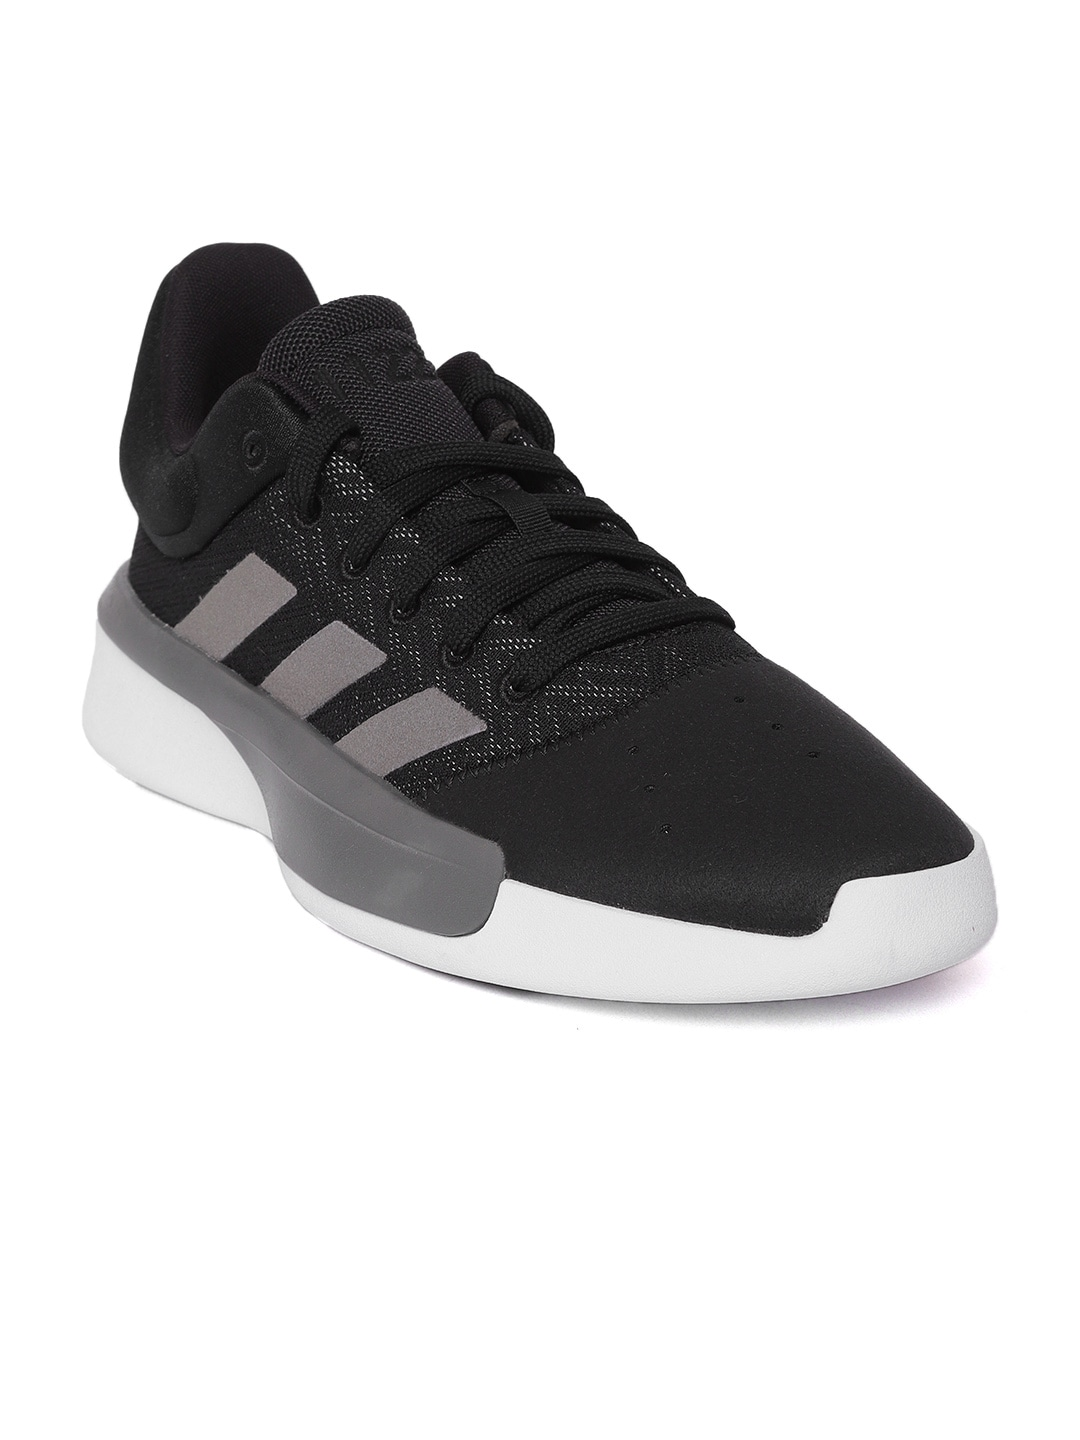 3bf8e71f6 Adidas Sports Shoes - Buy Addidas Sports Shoes Online